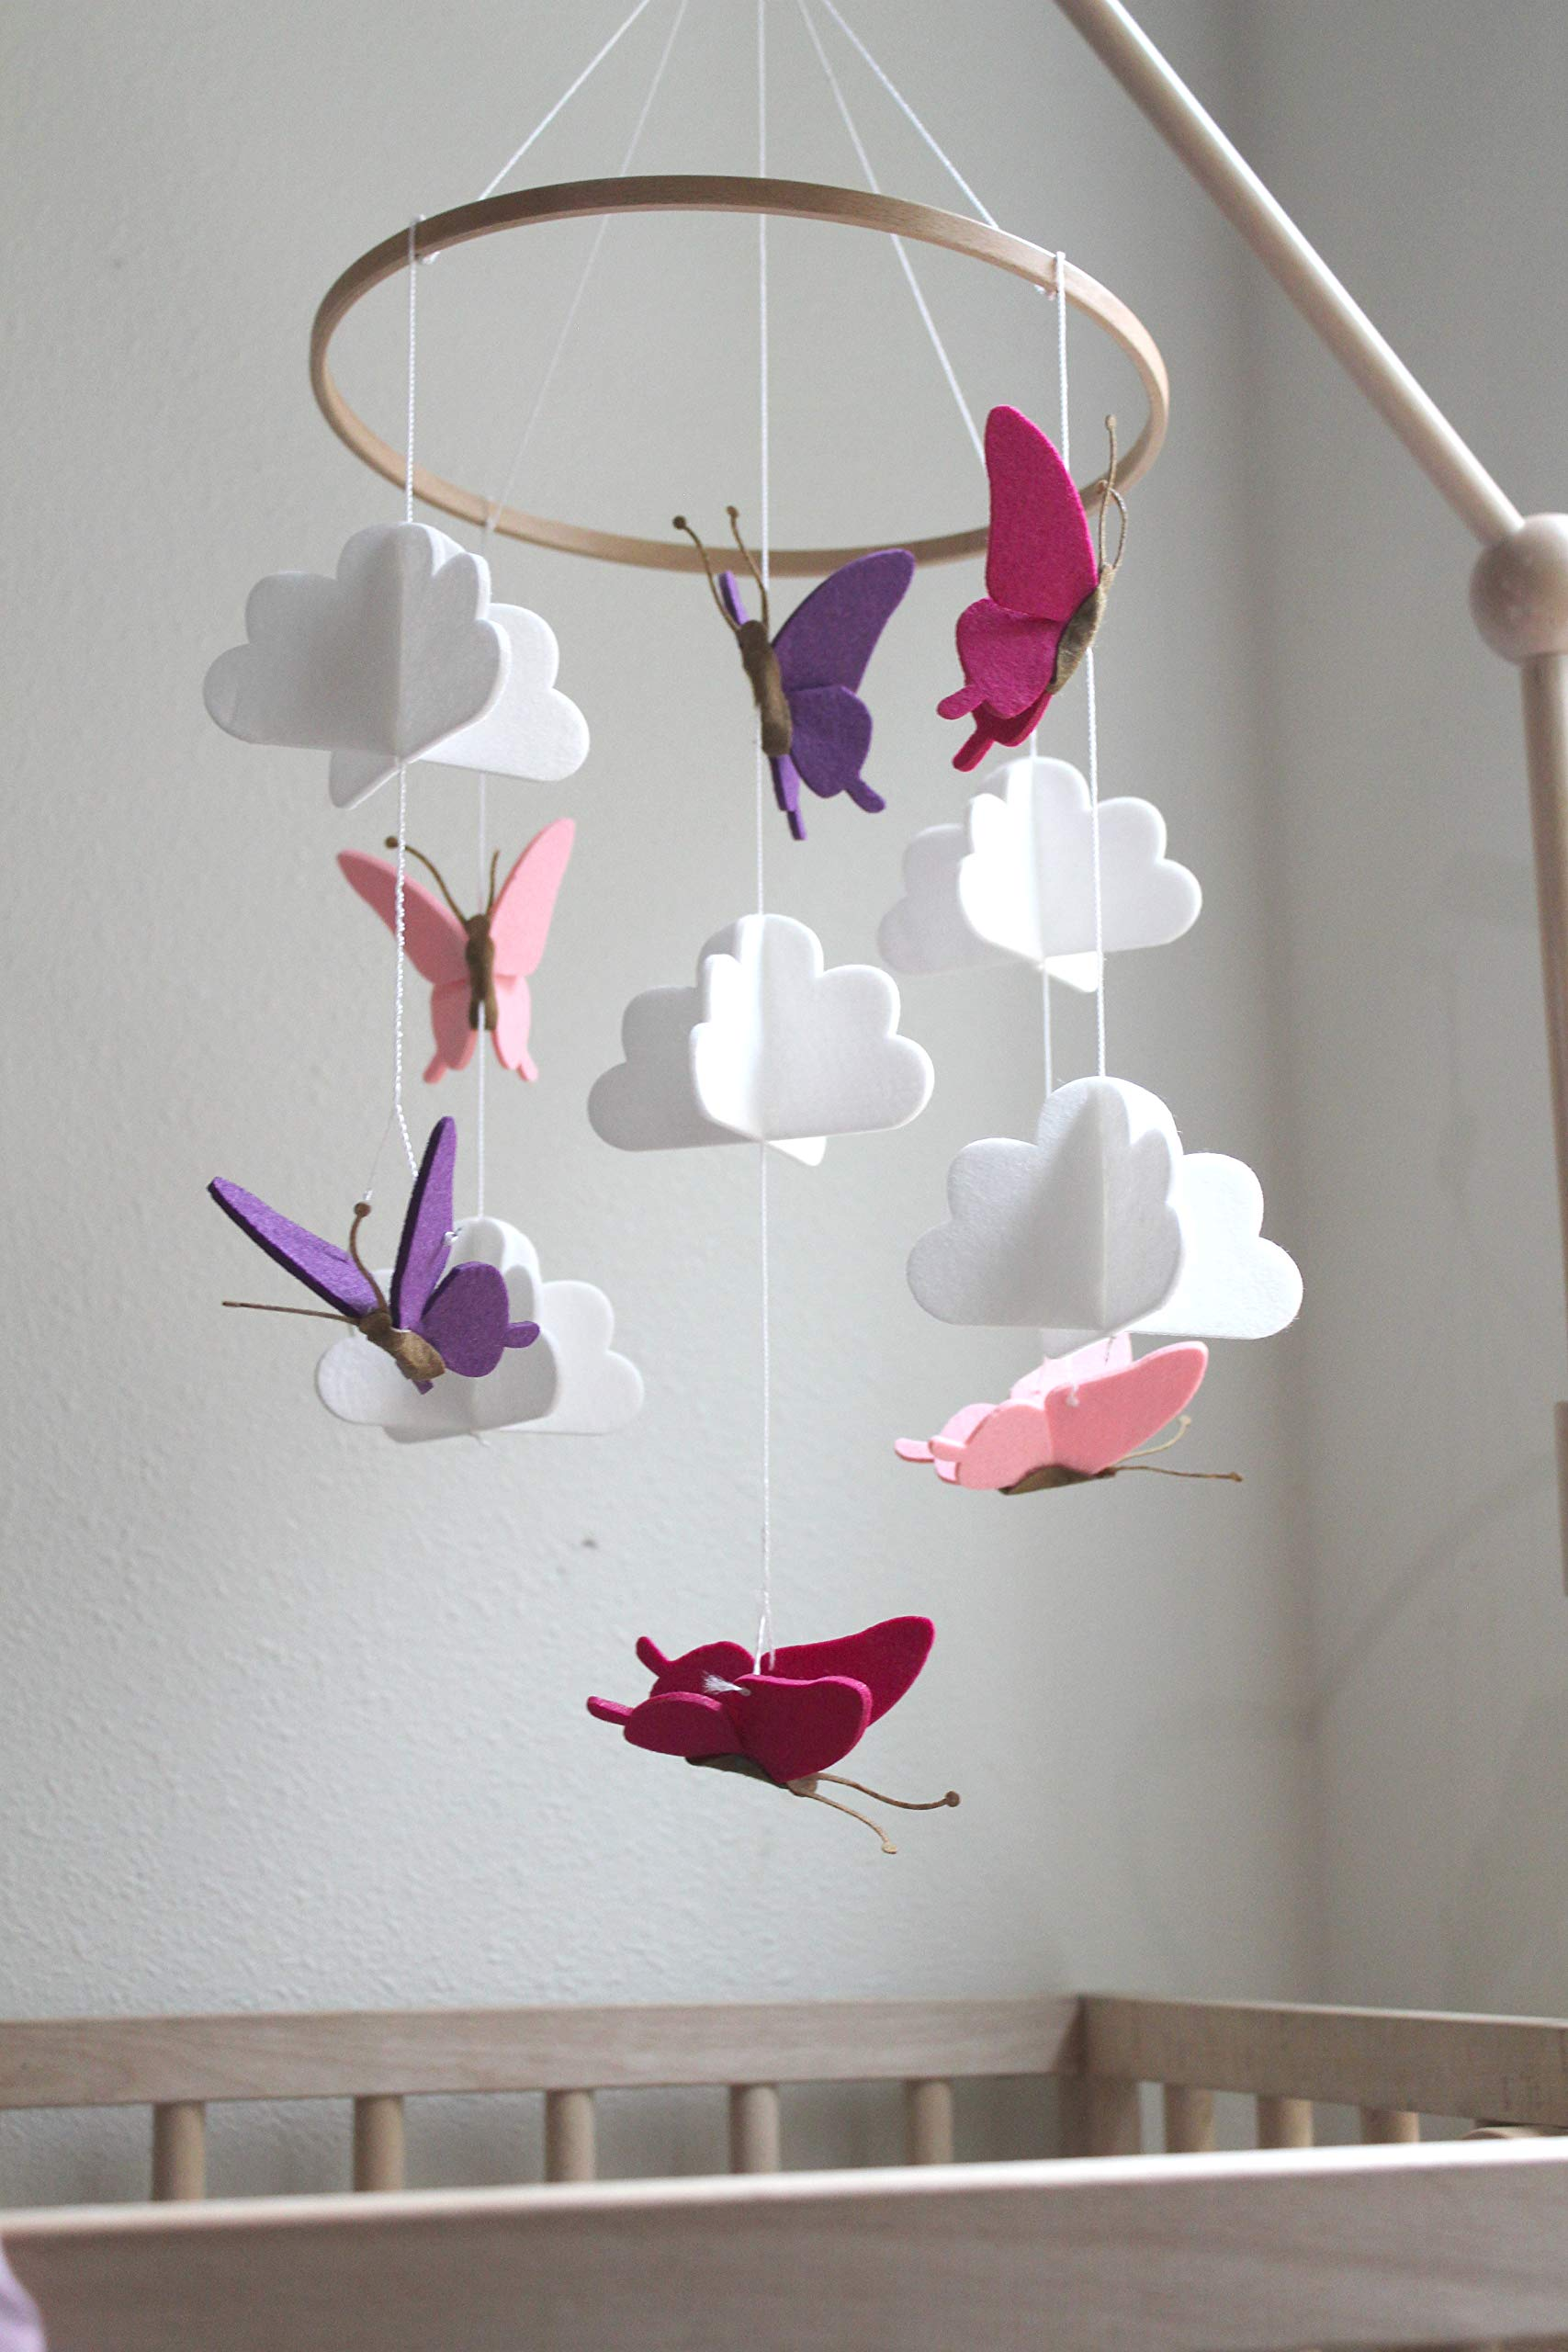 Baby Crib Mobile by Sorrel + Fern- Butterflies in The Clouds Nursery Decoration | Crib Mobile